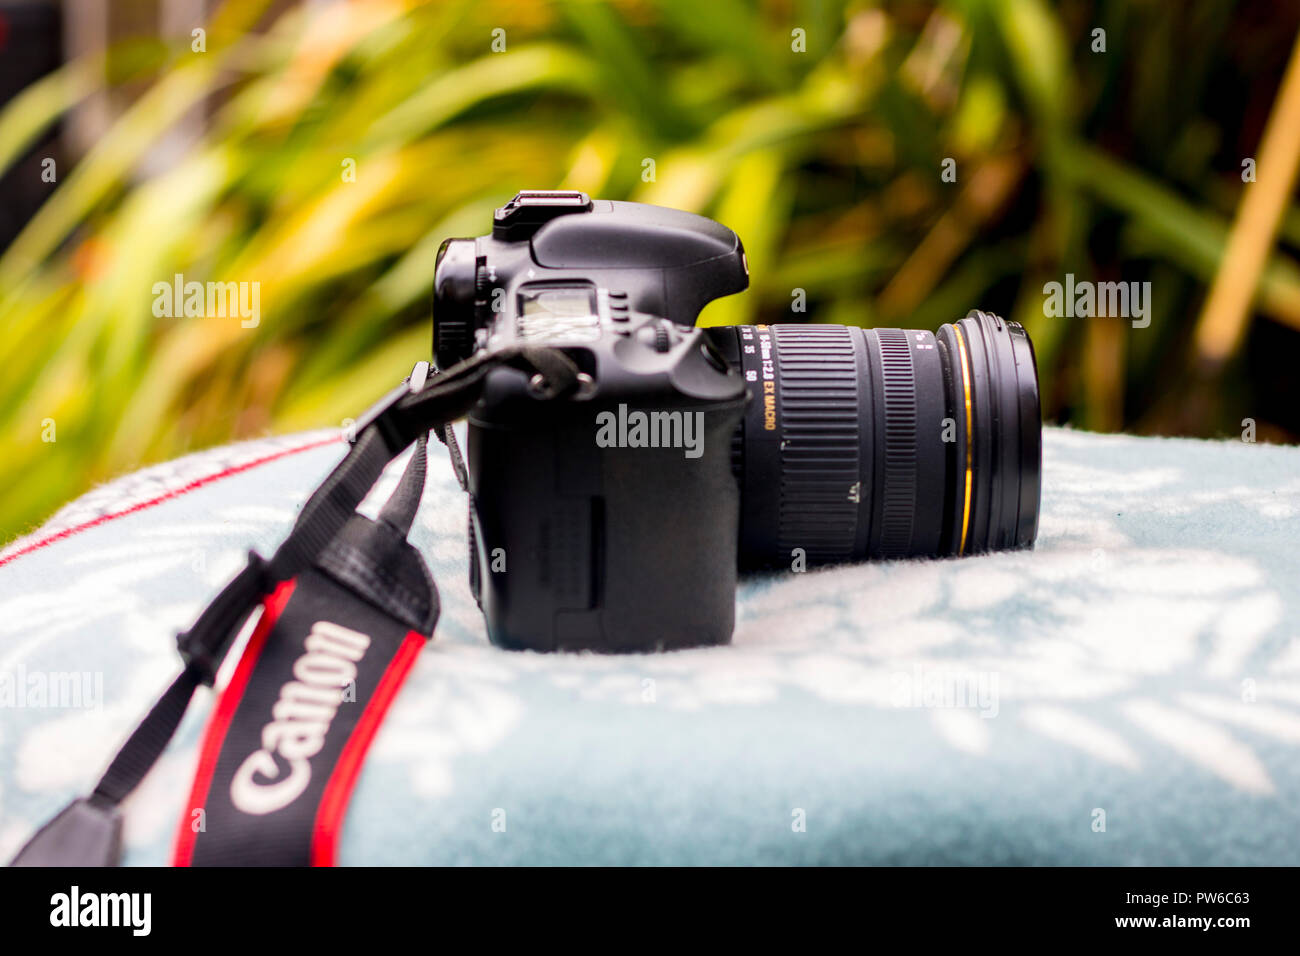 Canon Camera SLR mock-up blanket garden outdoors, photography concept, best life, lifestyle, taking photos, photographer concept, lazy afternoon - Stock Image